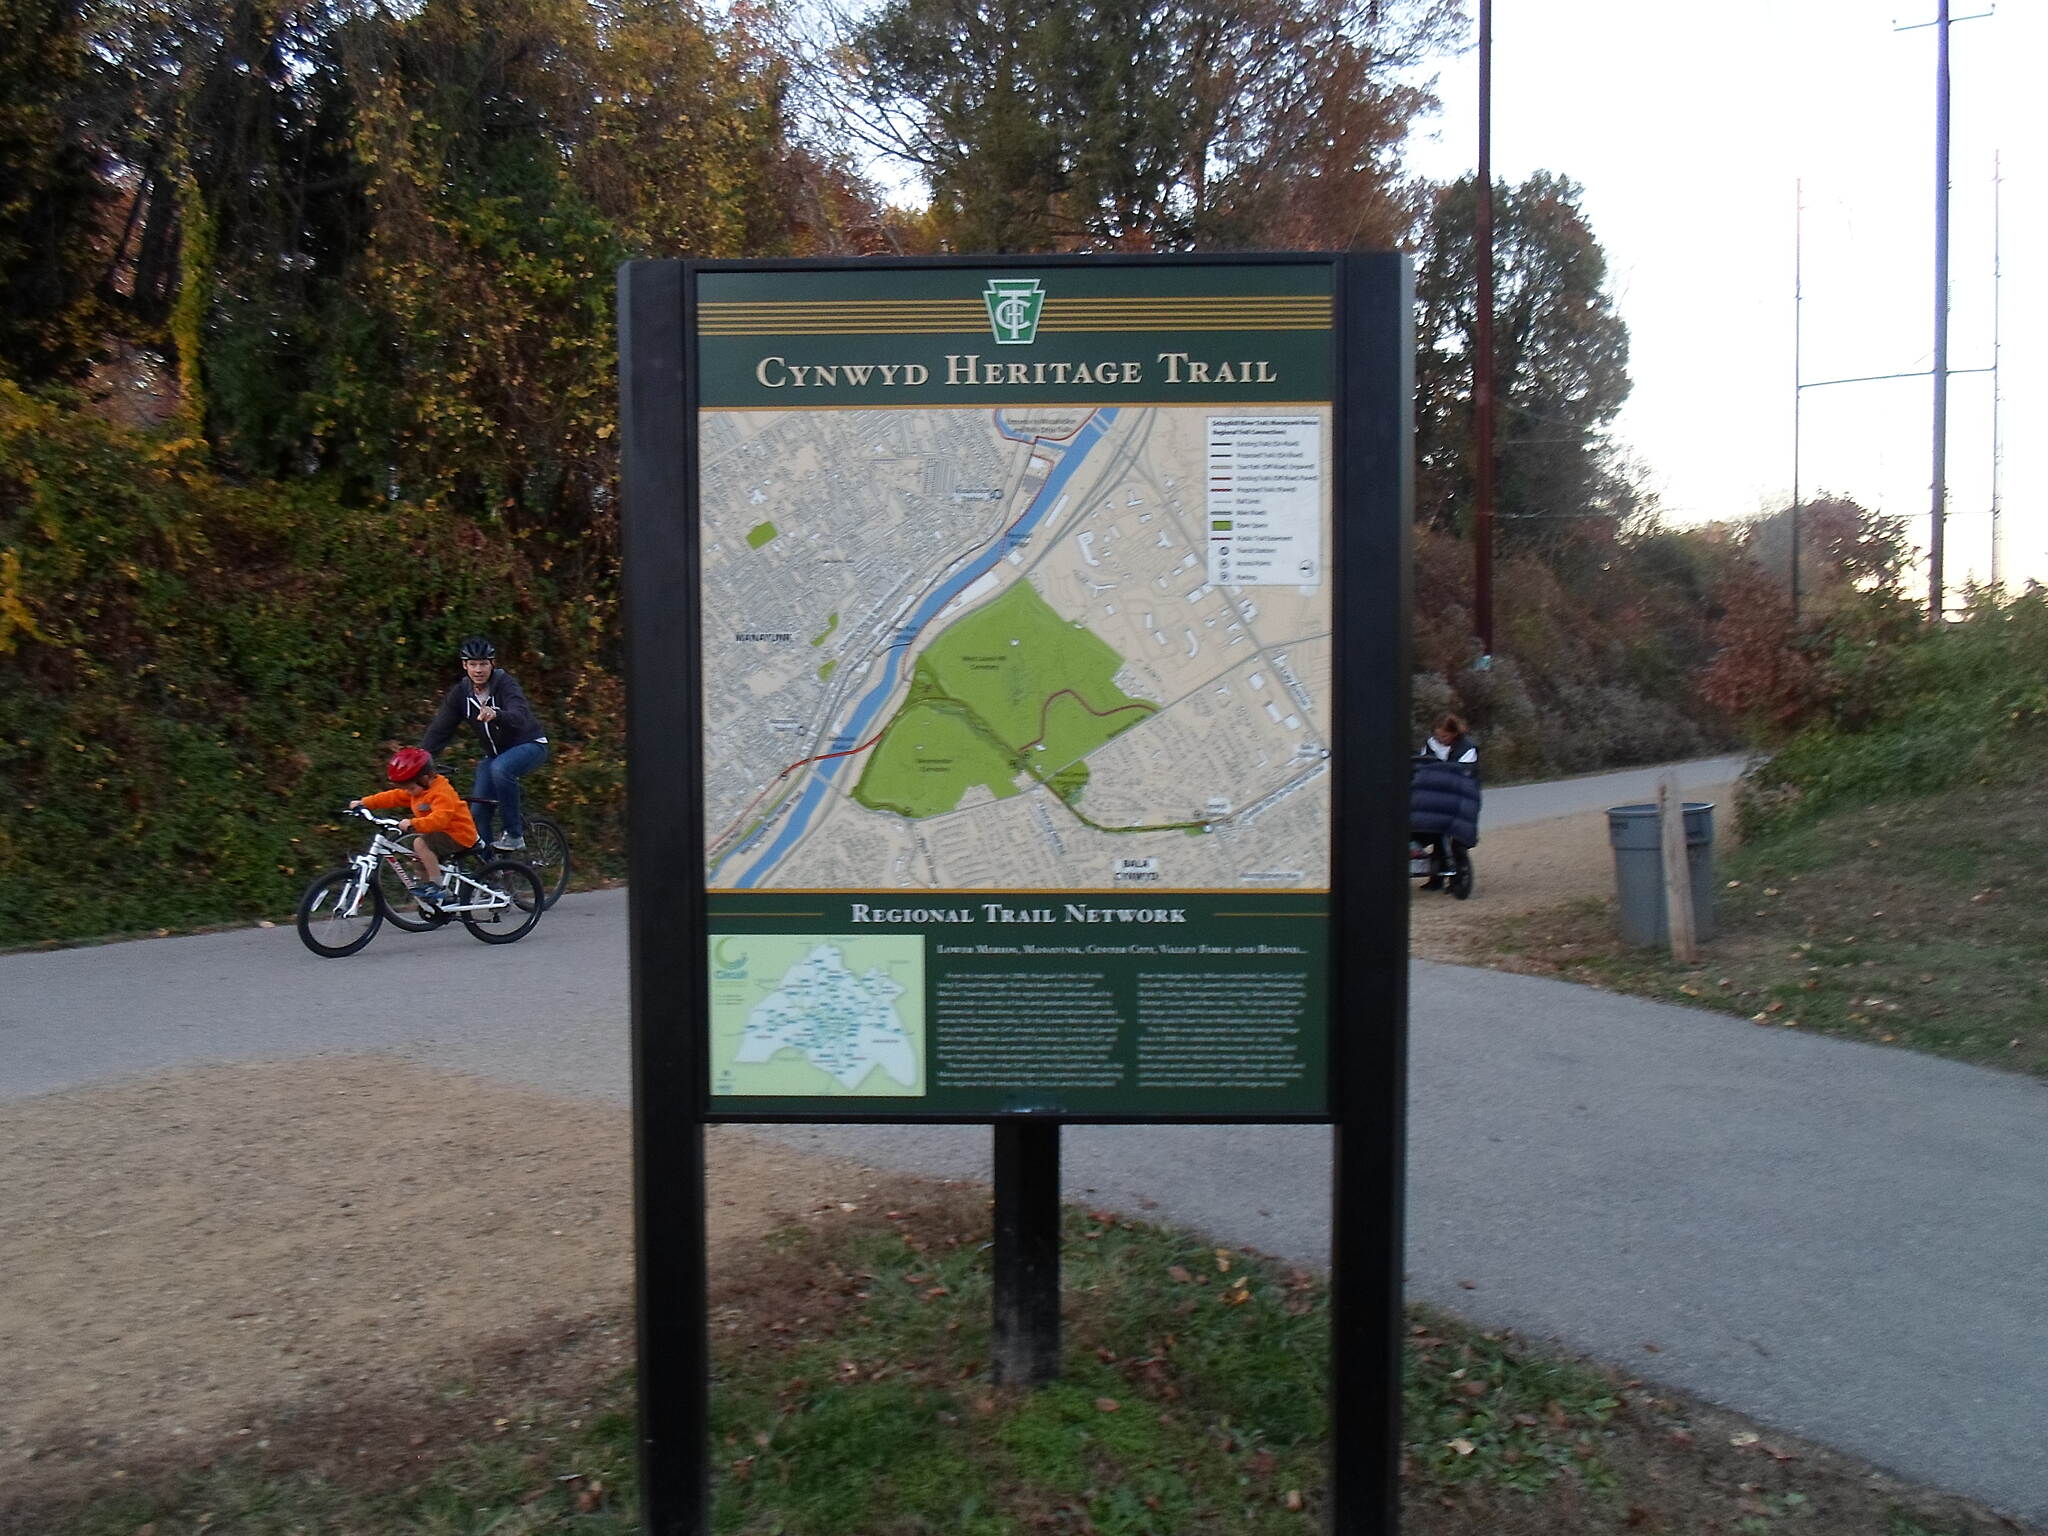 Cynwyd Heritage Trail Cynwyd Heritage Trail This sign is at the junction of the trail and the access path to Lower Merion Township Park. Taken Nov. 2015.